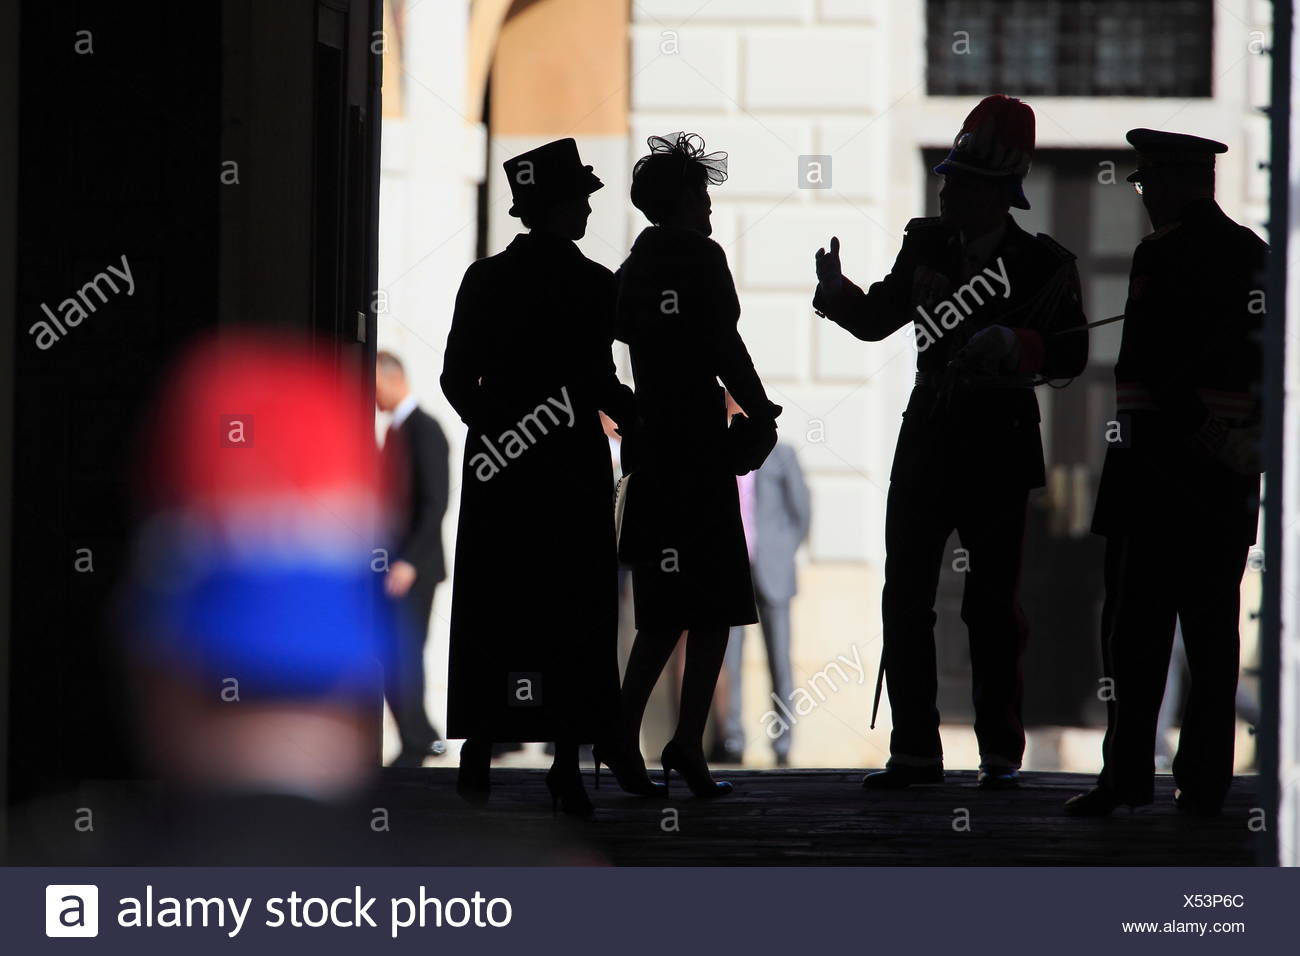 Bodyguard of the prince and visitors at the entrance of the Prince's Palace on the national Fête du Prince - Stock Image